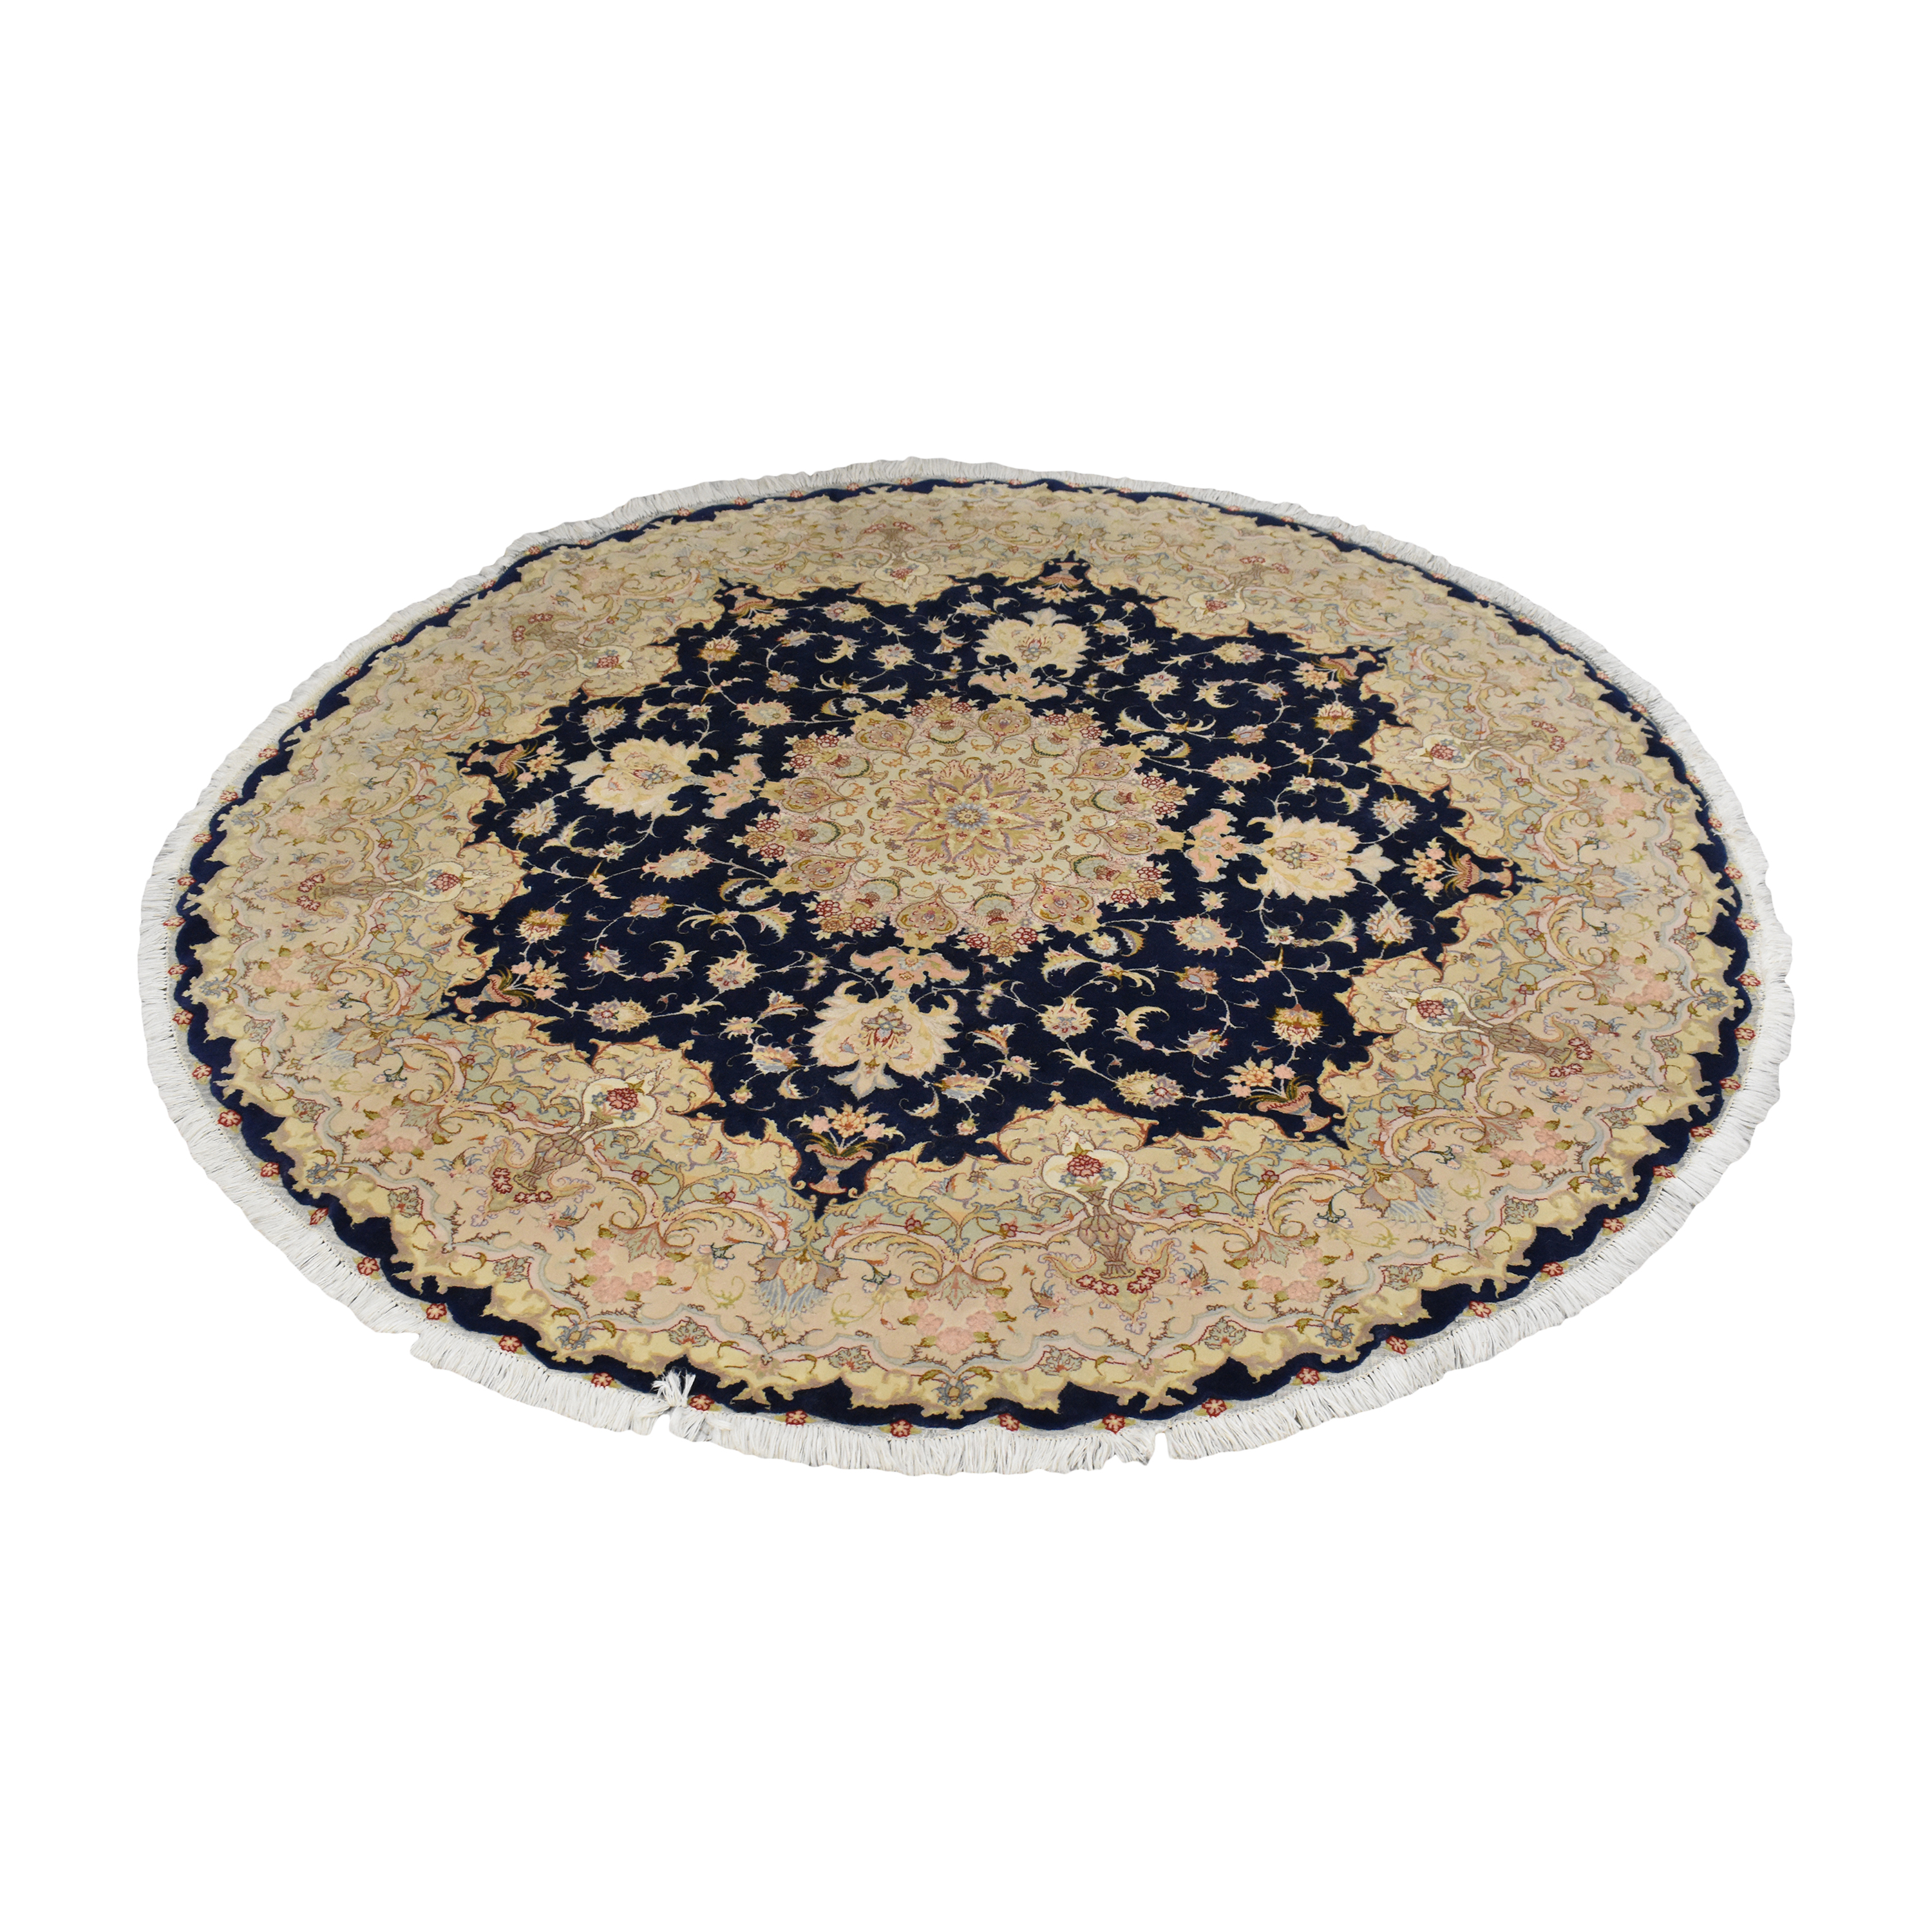 buy Round Patterned Rug with Tassels